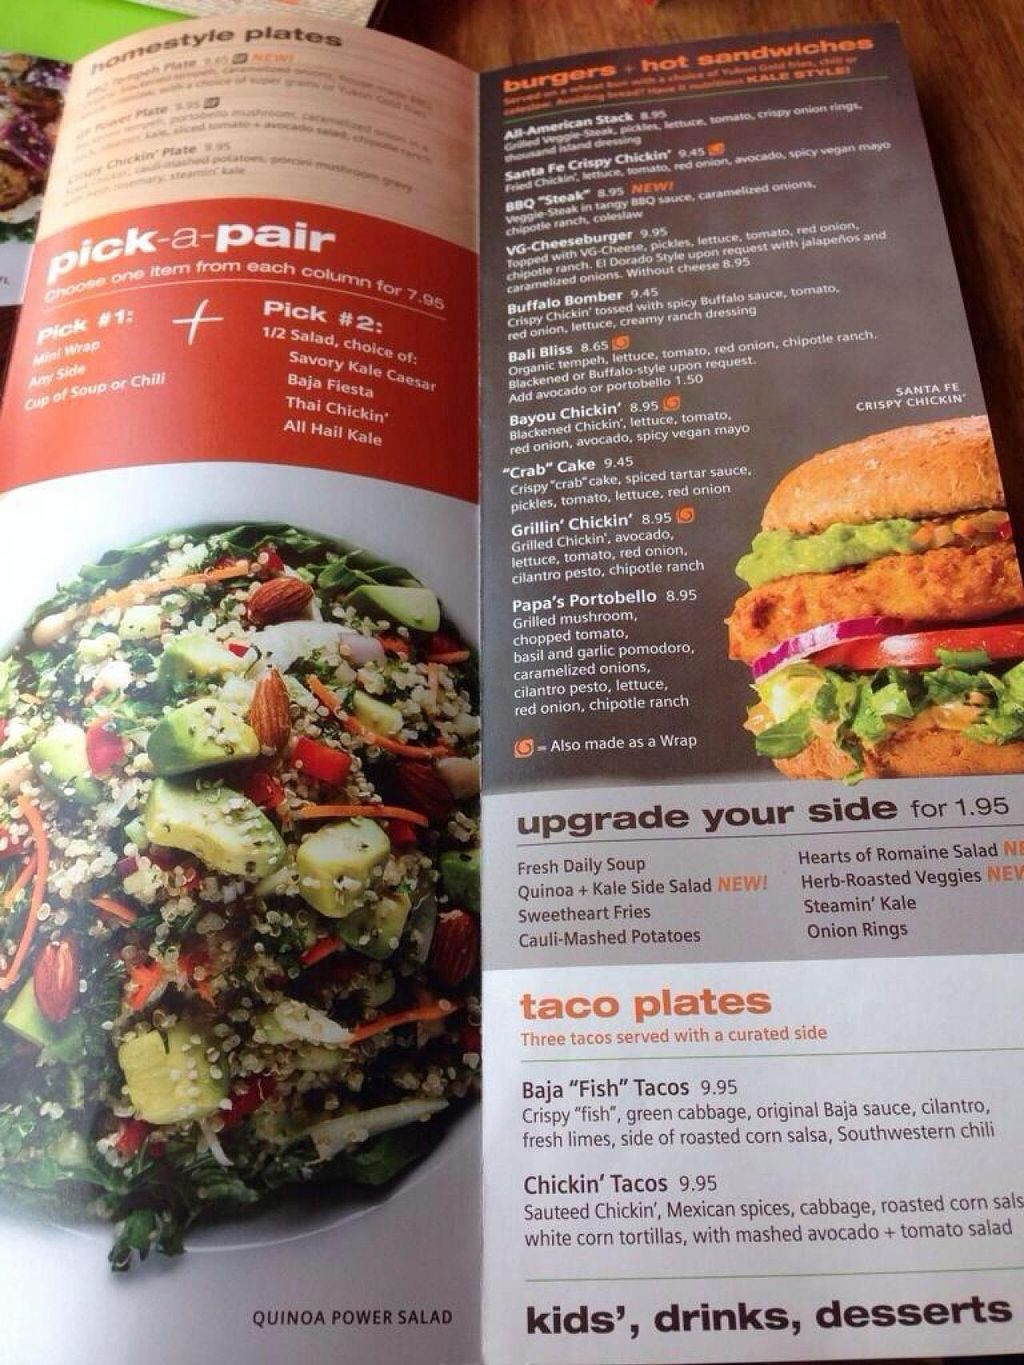 """Photo of Veggie Grill  by <a href=""""/members/profile/Carioquinha17"""">Carioquinha17</a> <br/>Their menu.  <br/> May 11, 2014  - <a href='/contact/abuse/image/47261/69829'>Report</a>"""